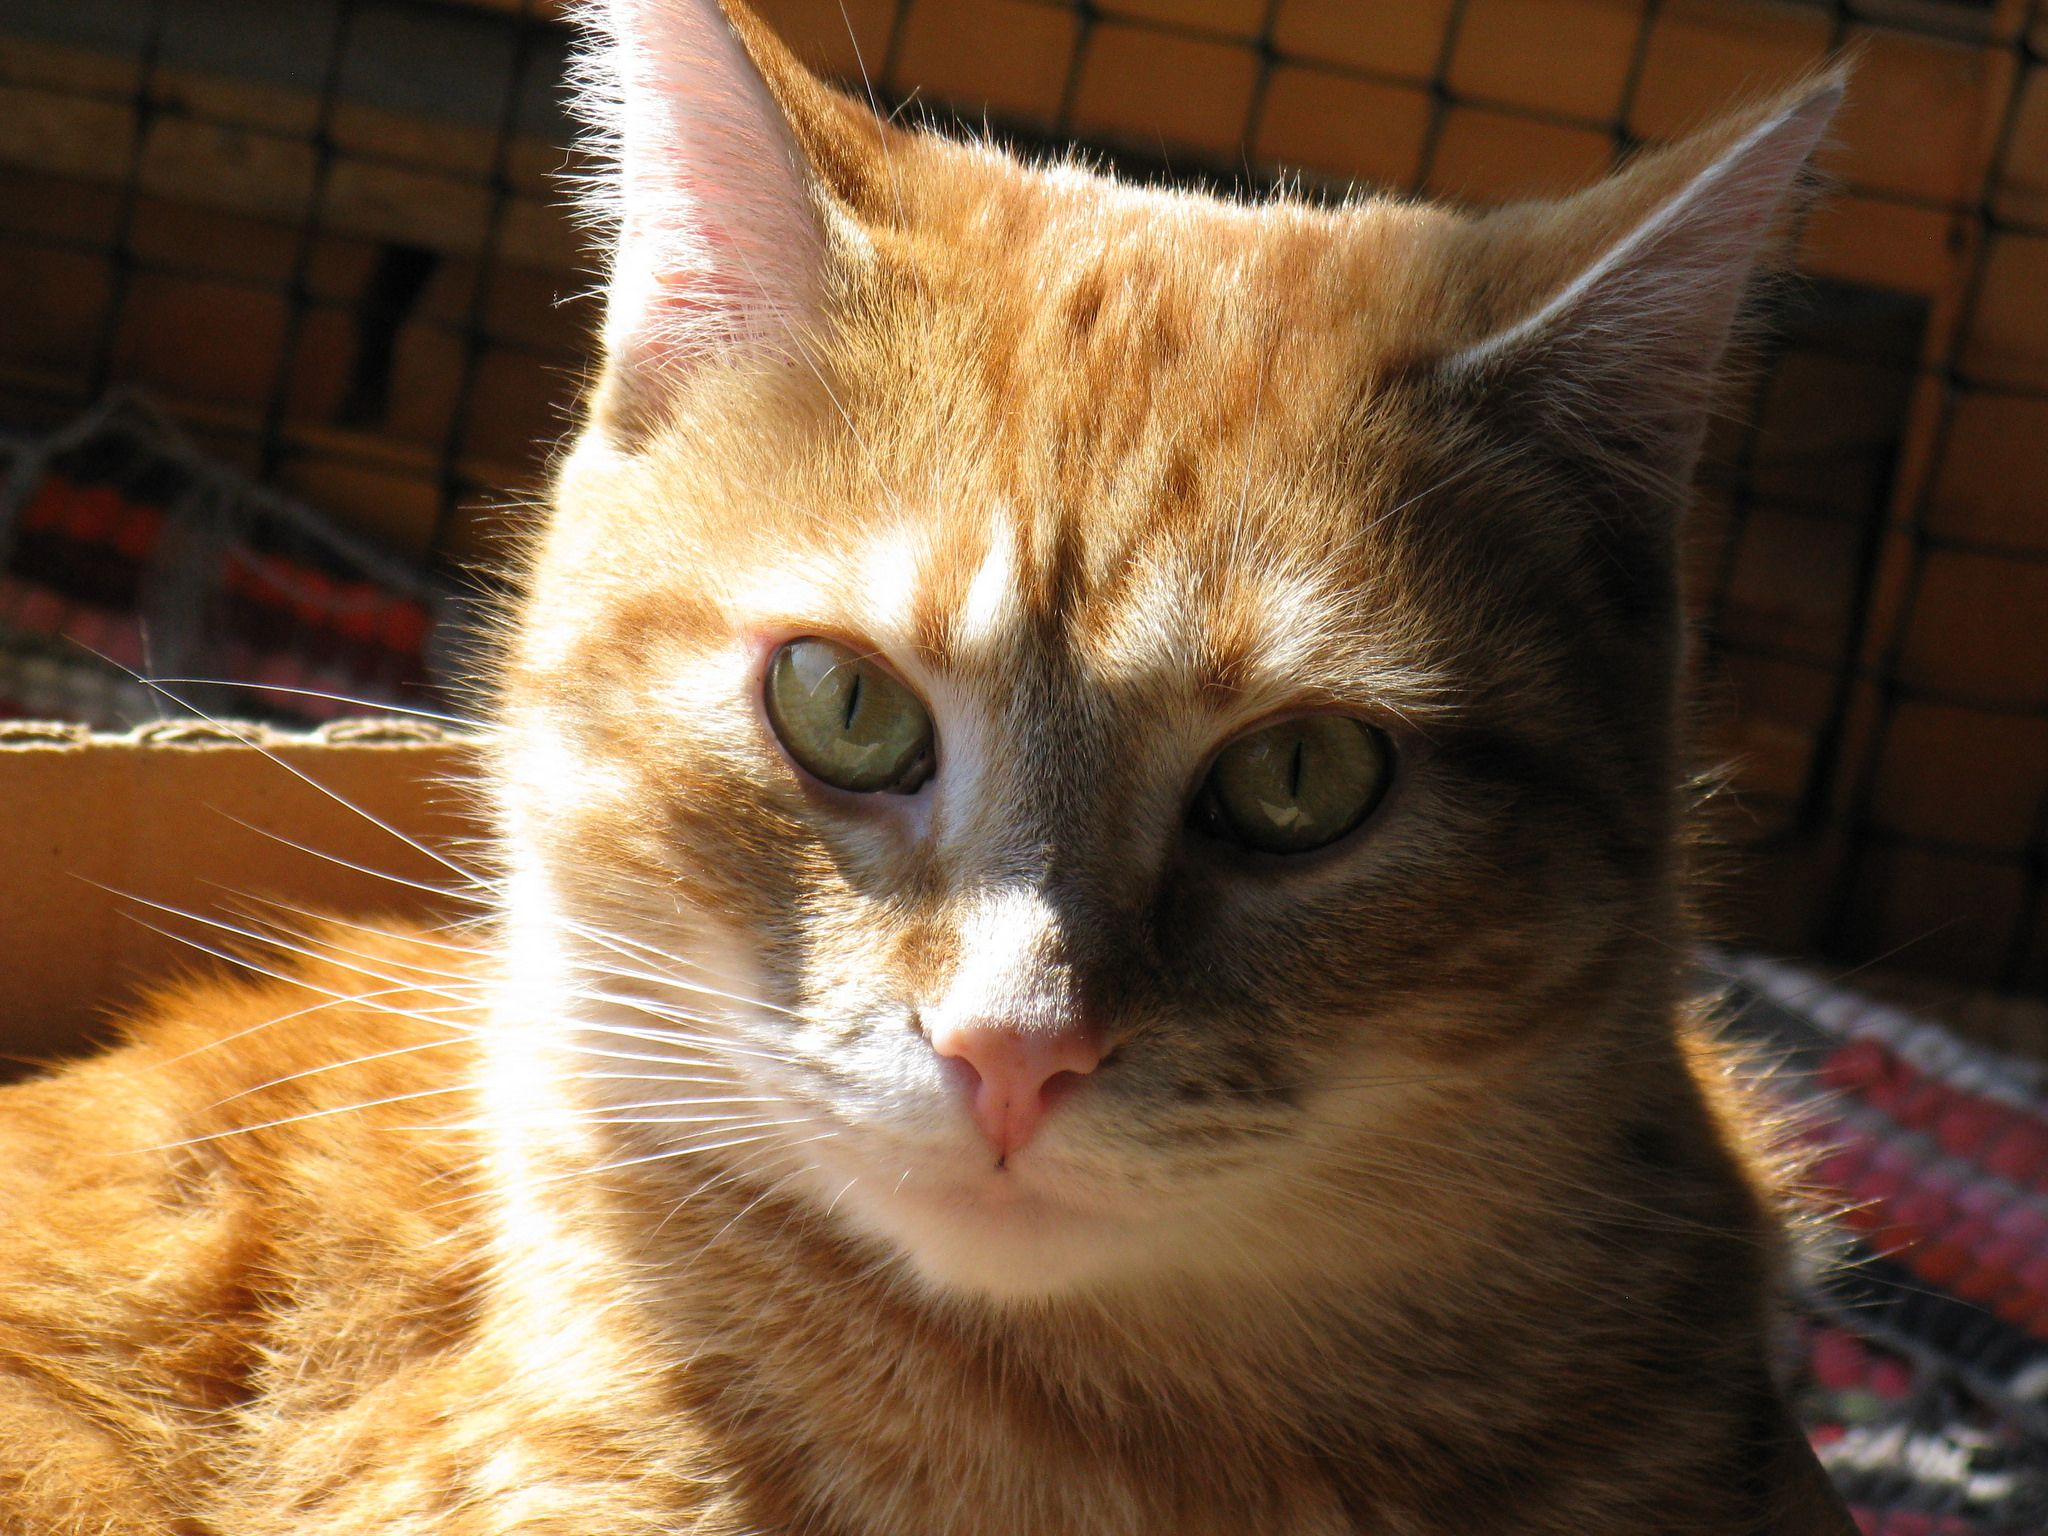 Manx Kittens for Sale & Cats for Adoption Sweetie Kitty